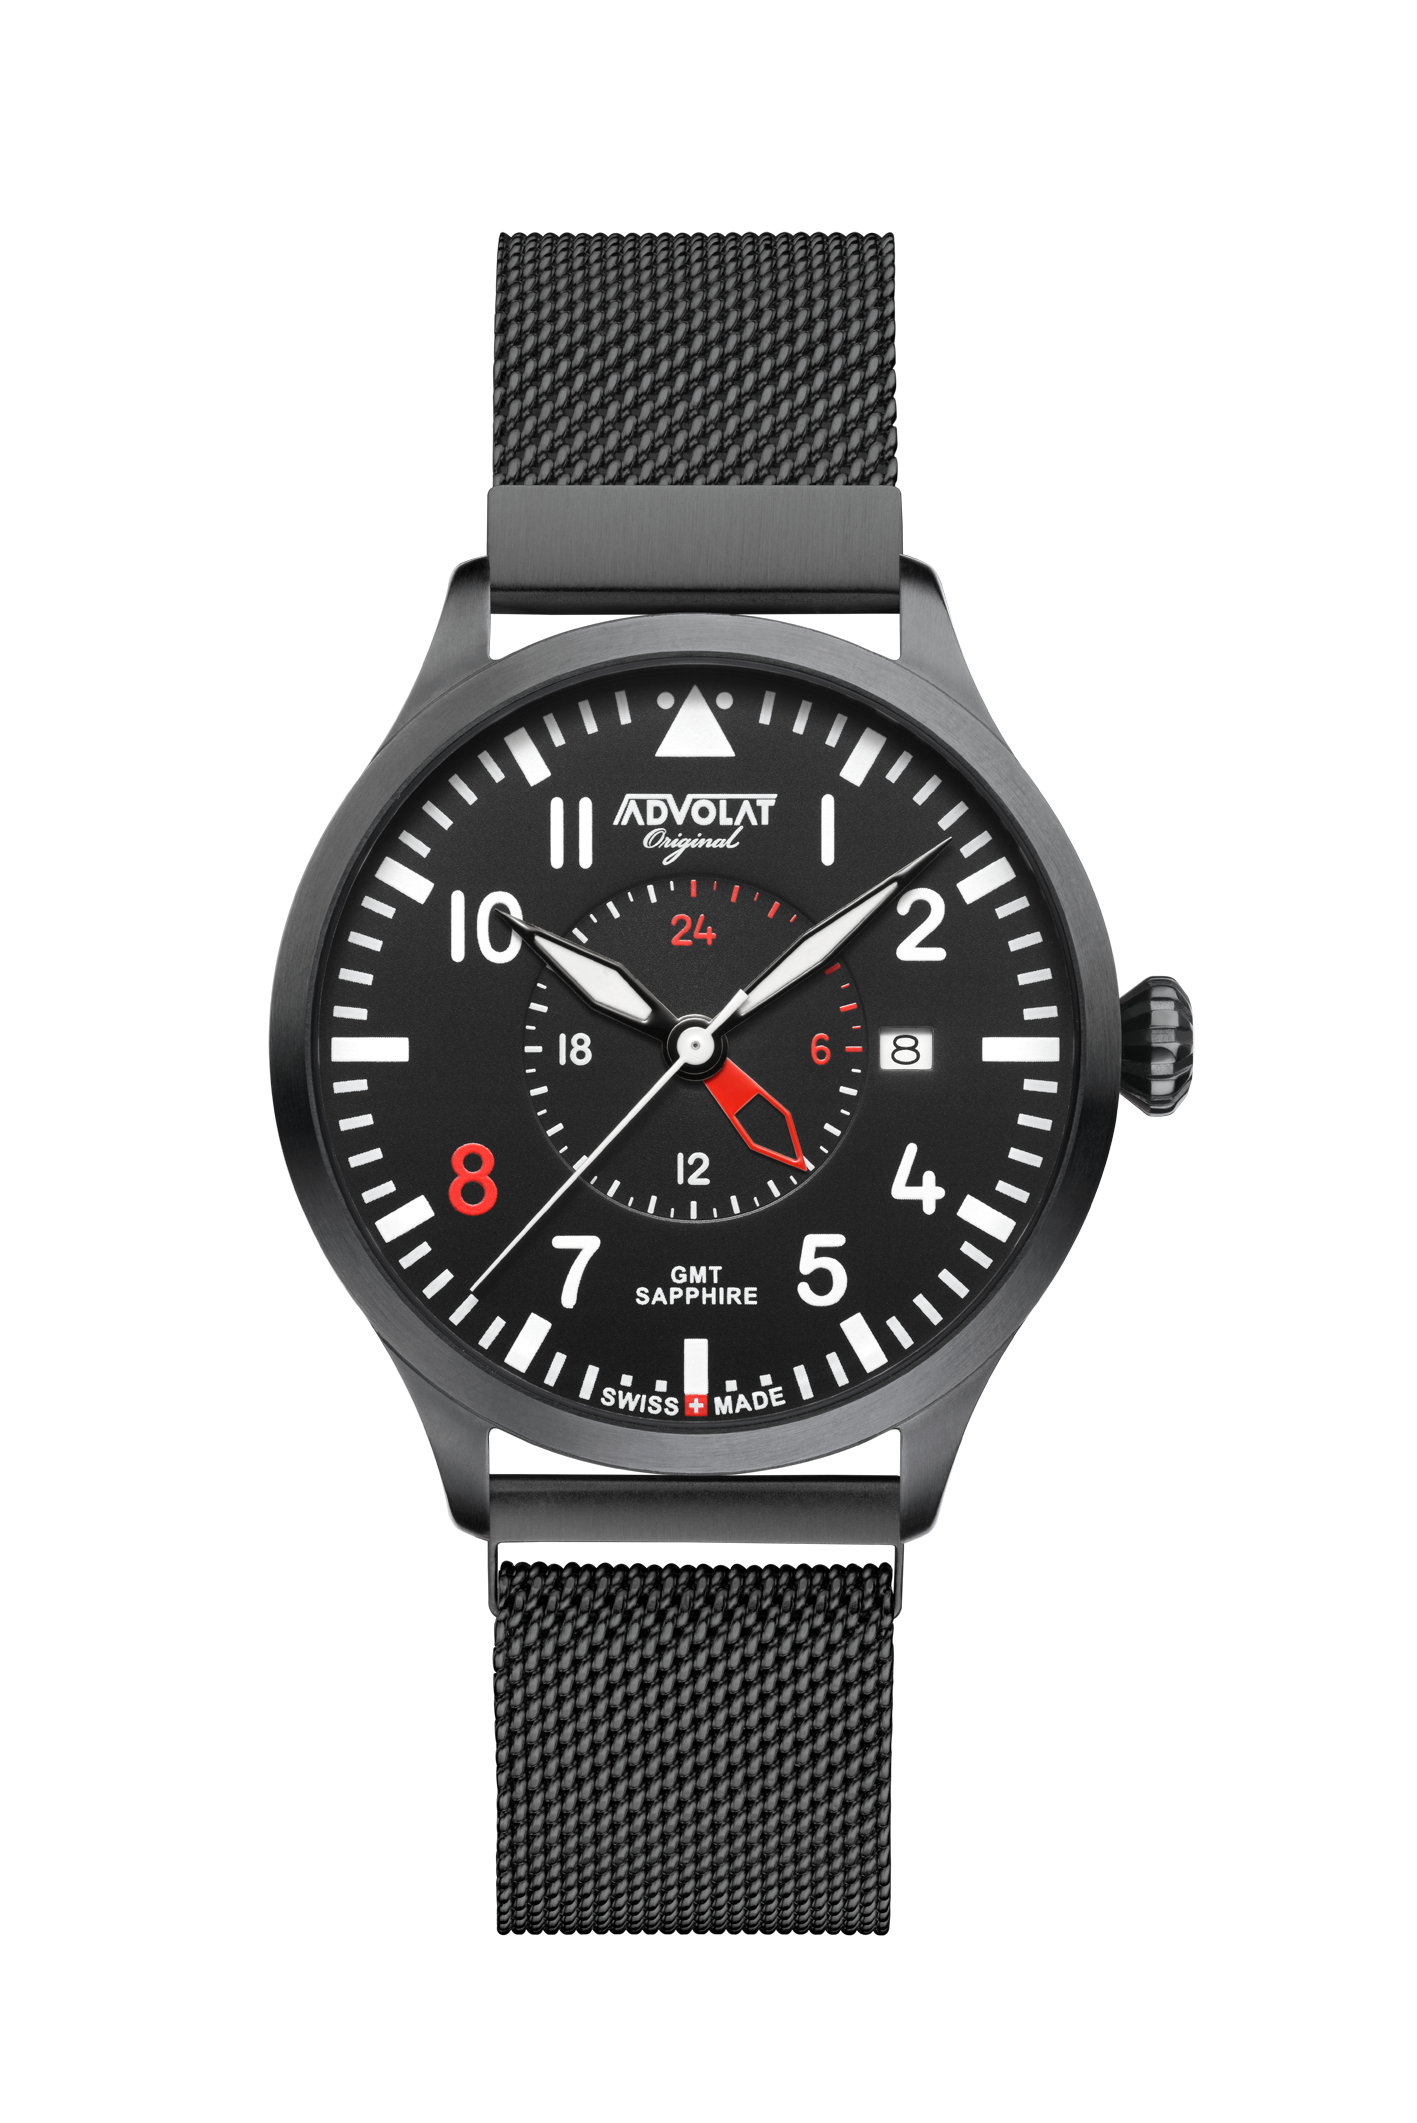 FLIEGER GMT MIL